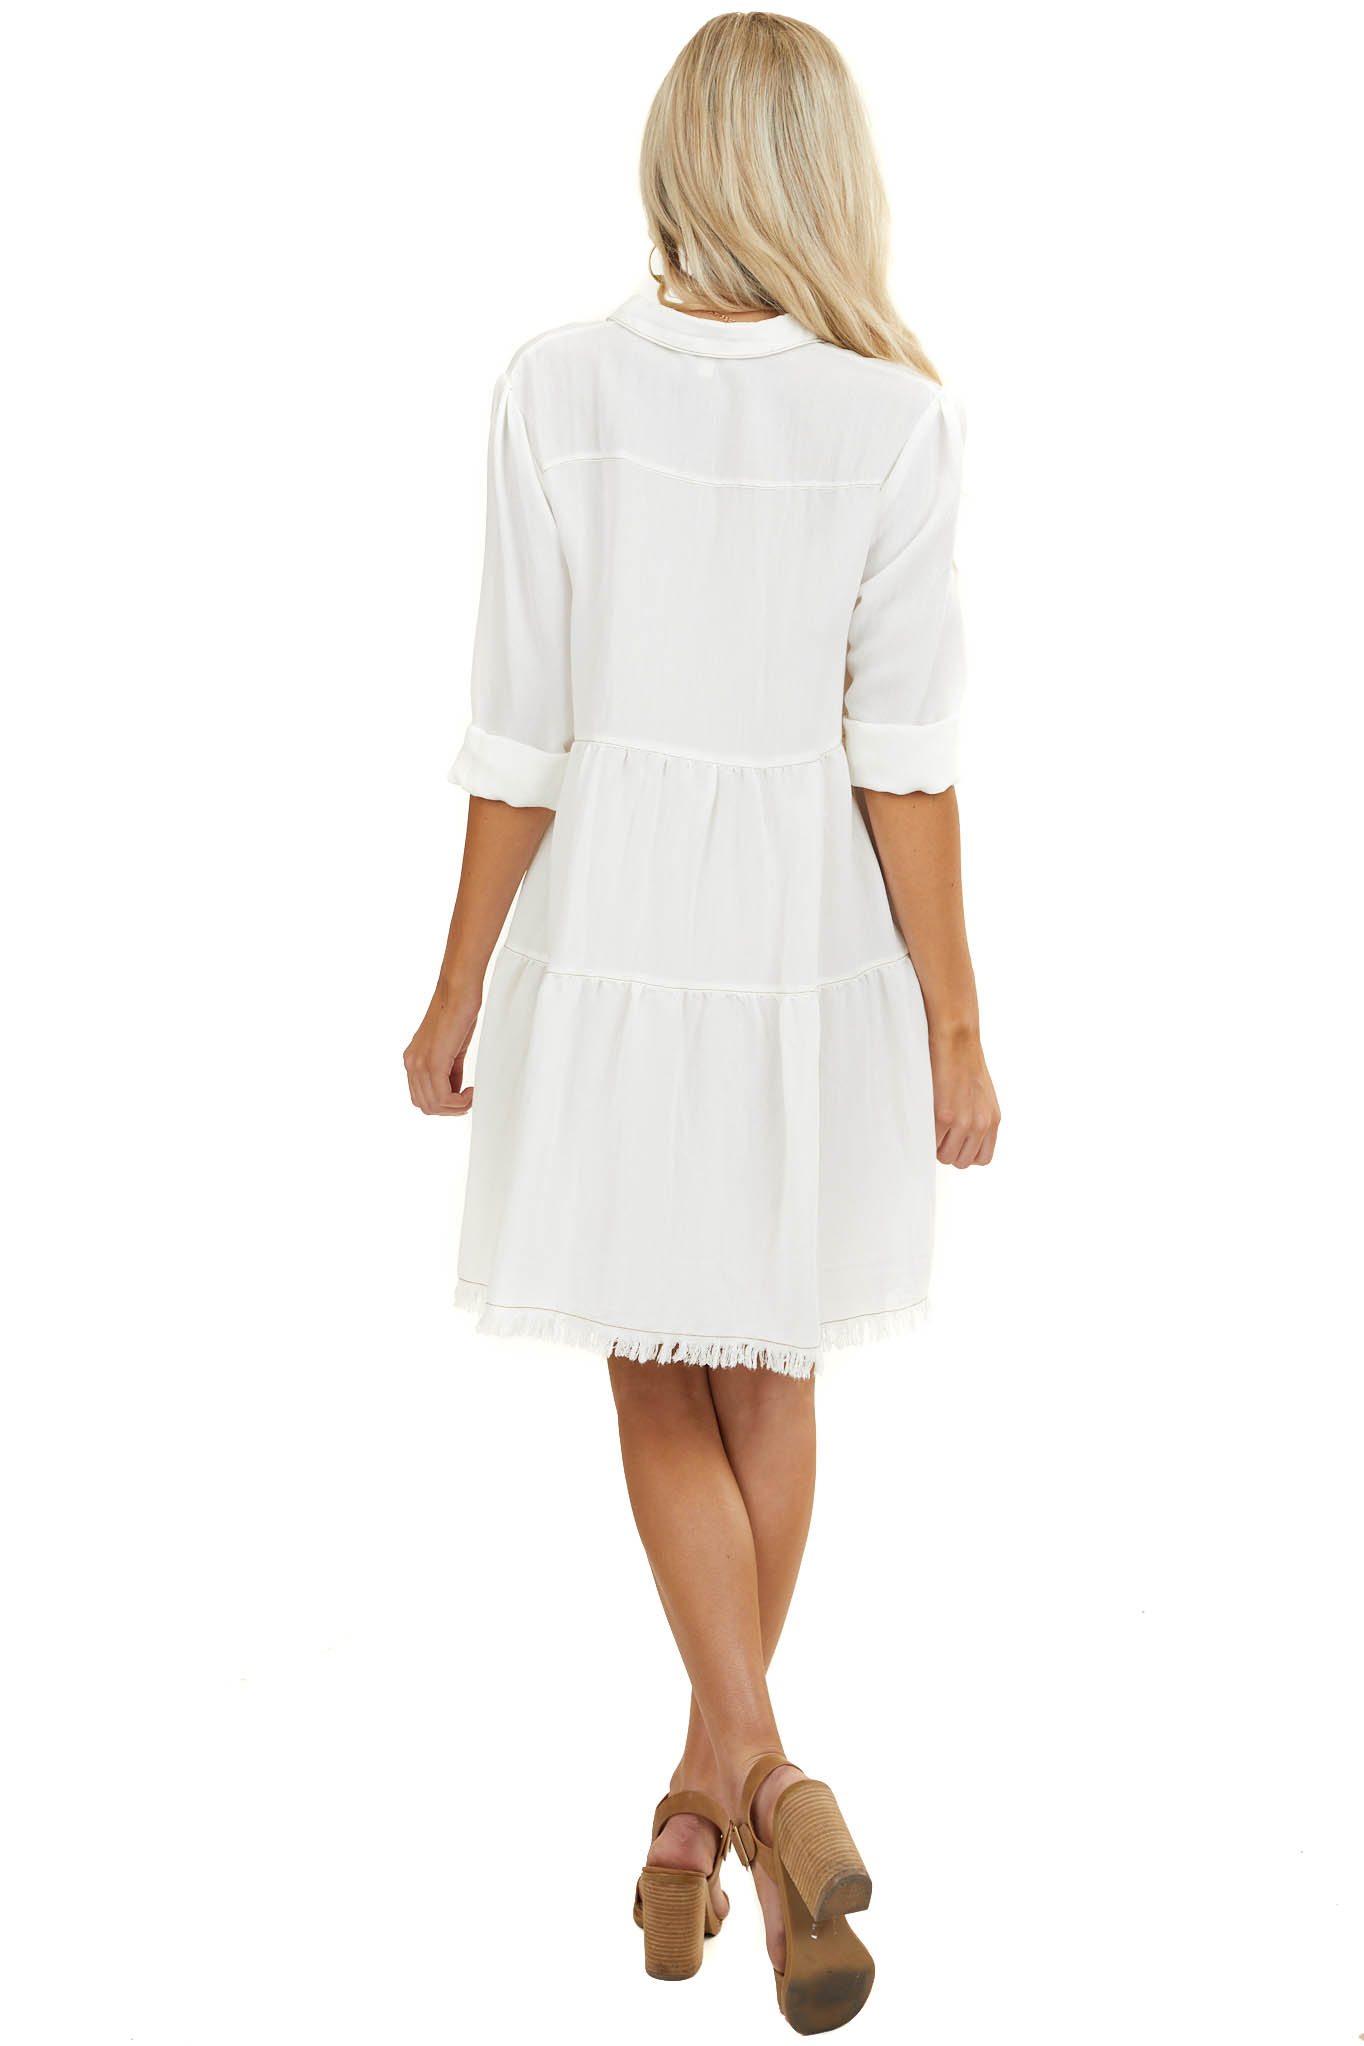 Ivory Button Down Dress with Frayed Hemline